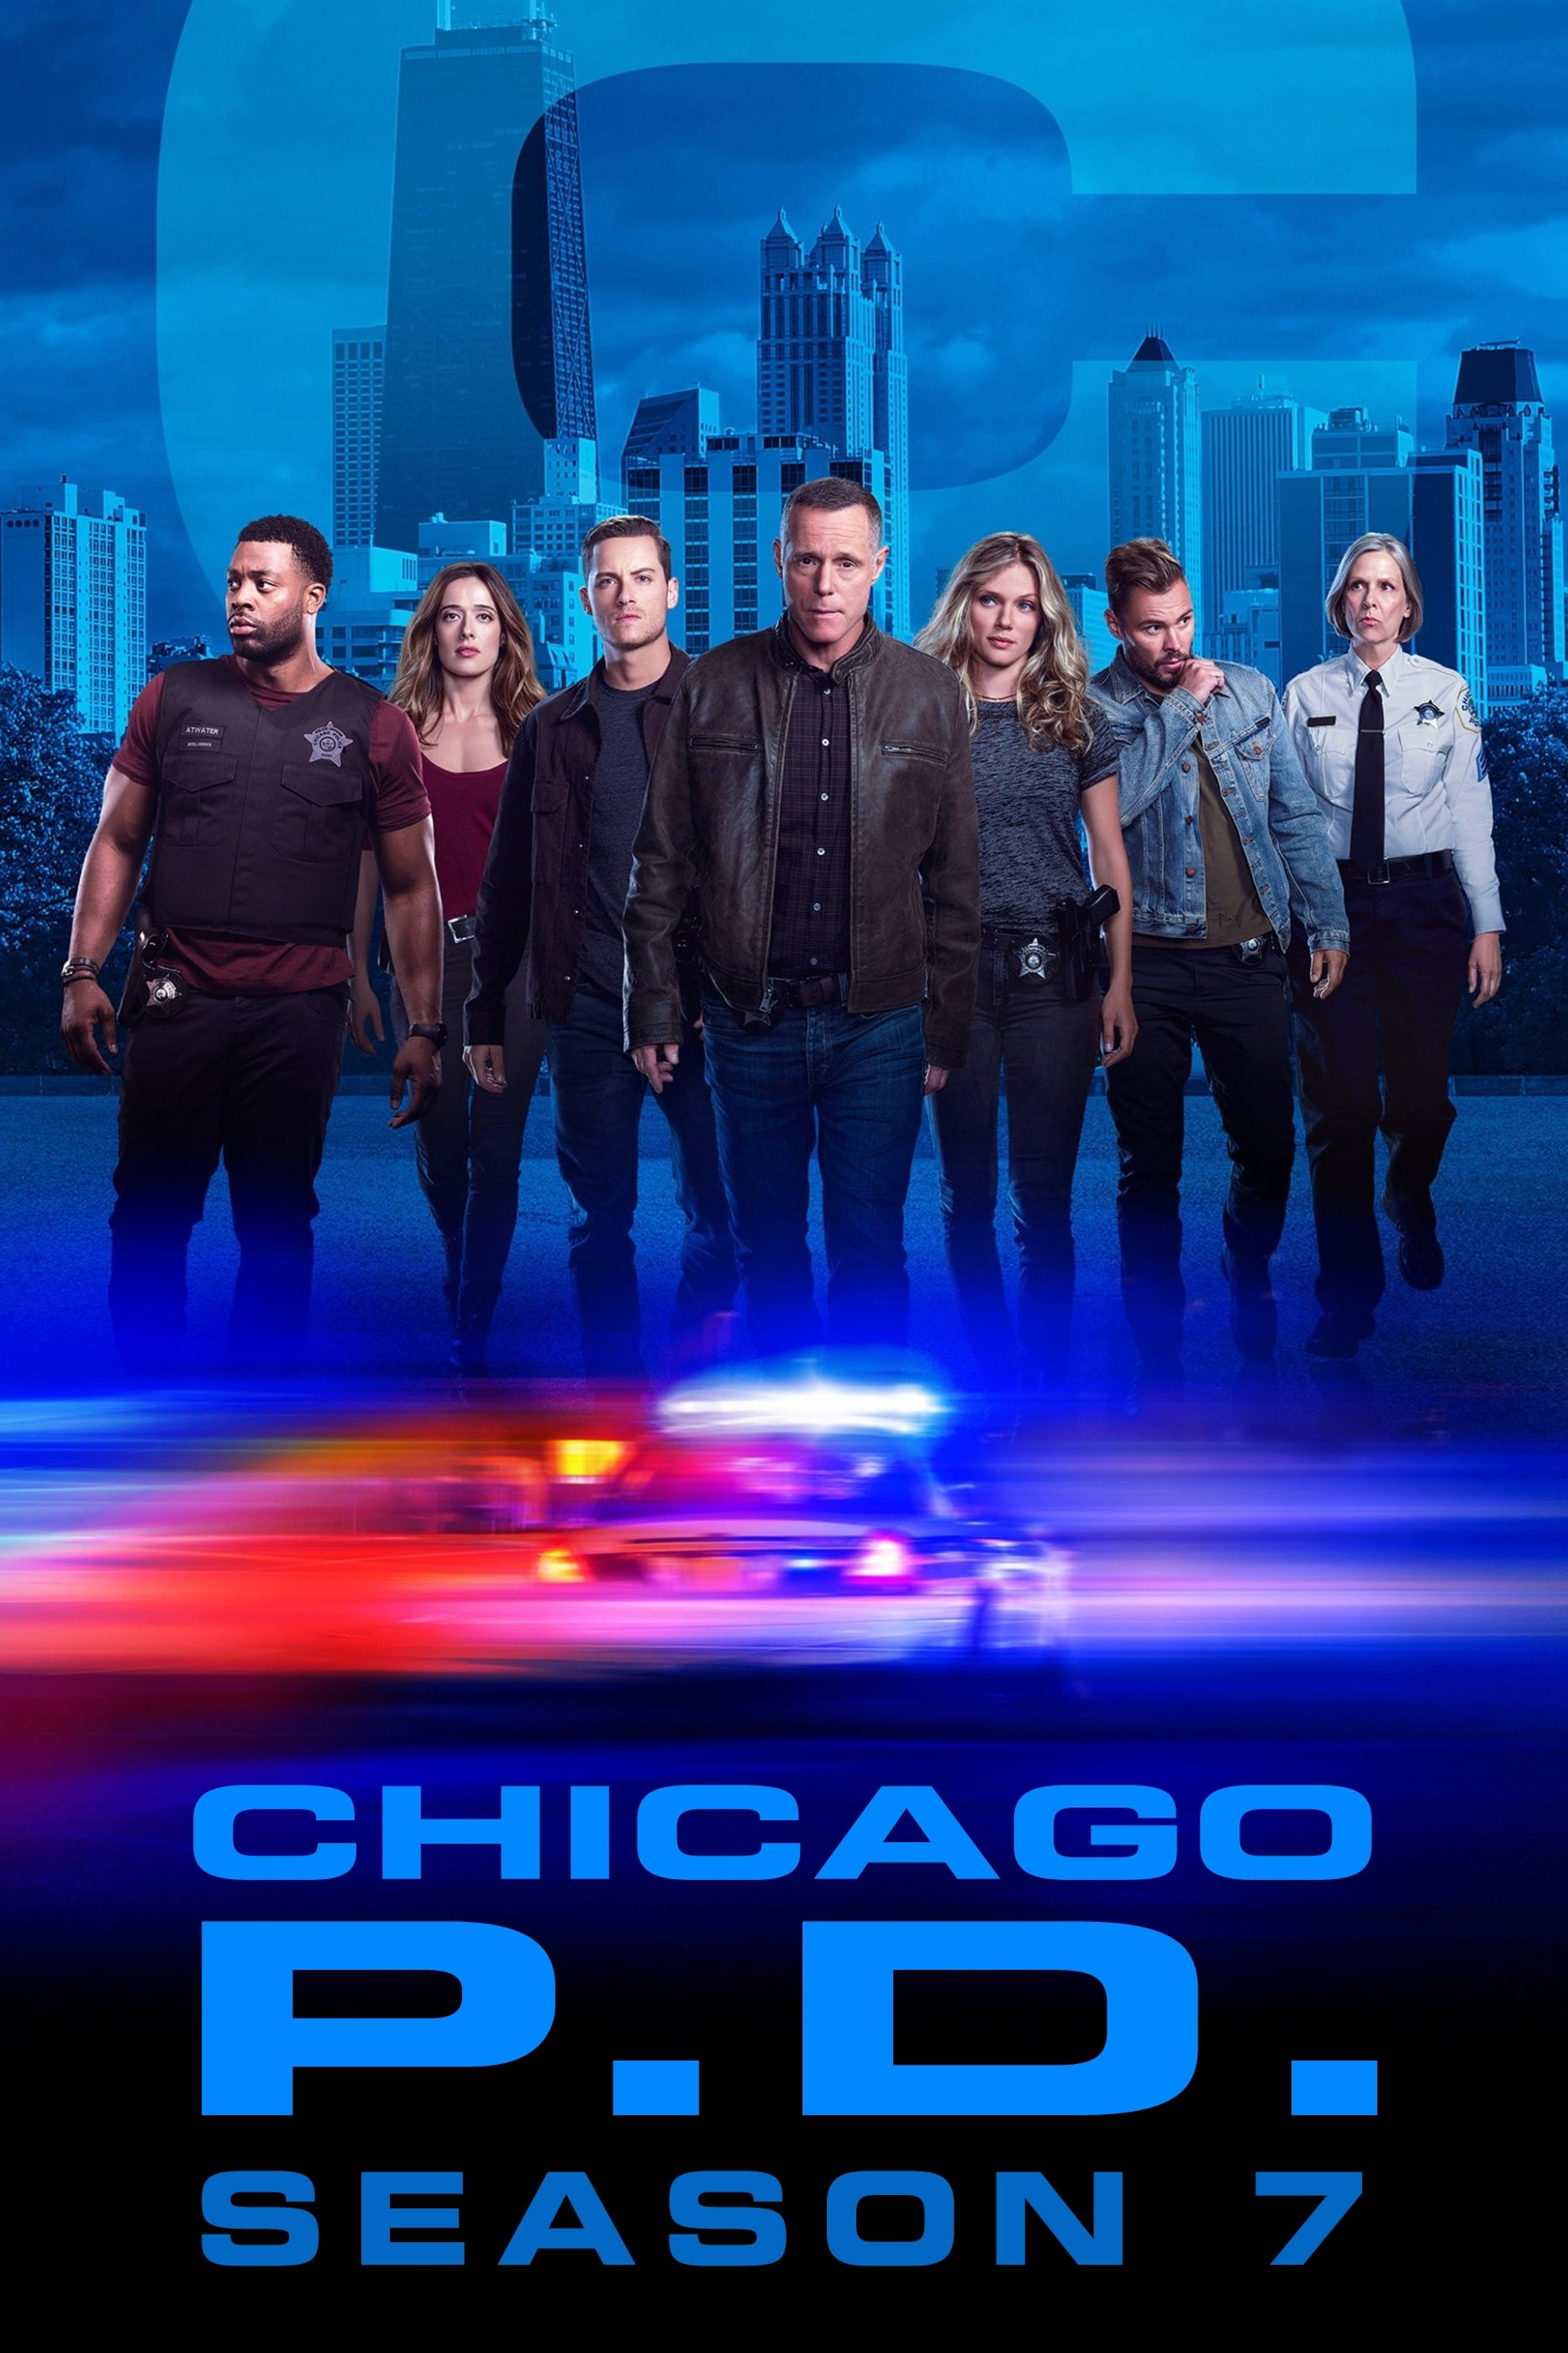 Chicago P.D. Season 7